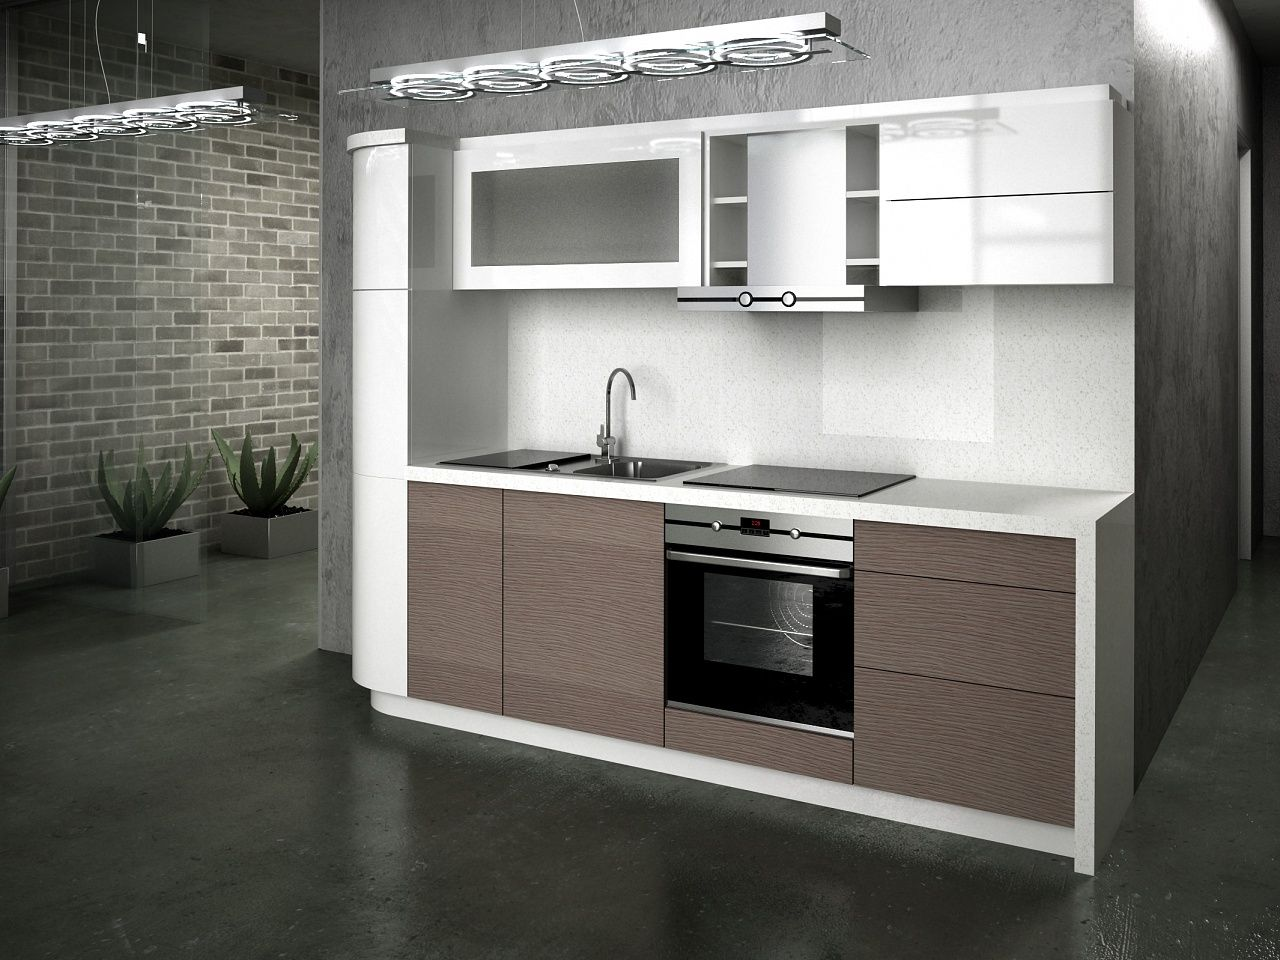 compact office kitchen modern kitchen. Kitchen:Striking Minimalist Kitchen Unit With Dark Tones And Exposed Brick Wall Gorgeous Compact Units For Your Inspirations Design Office Modern